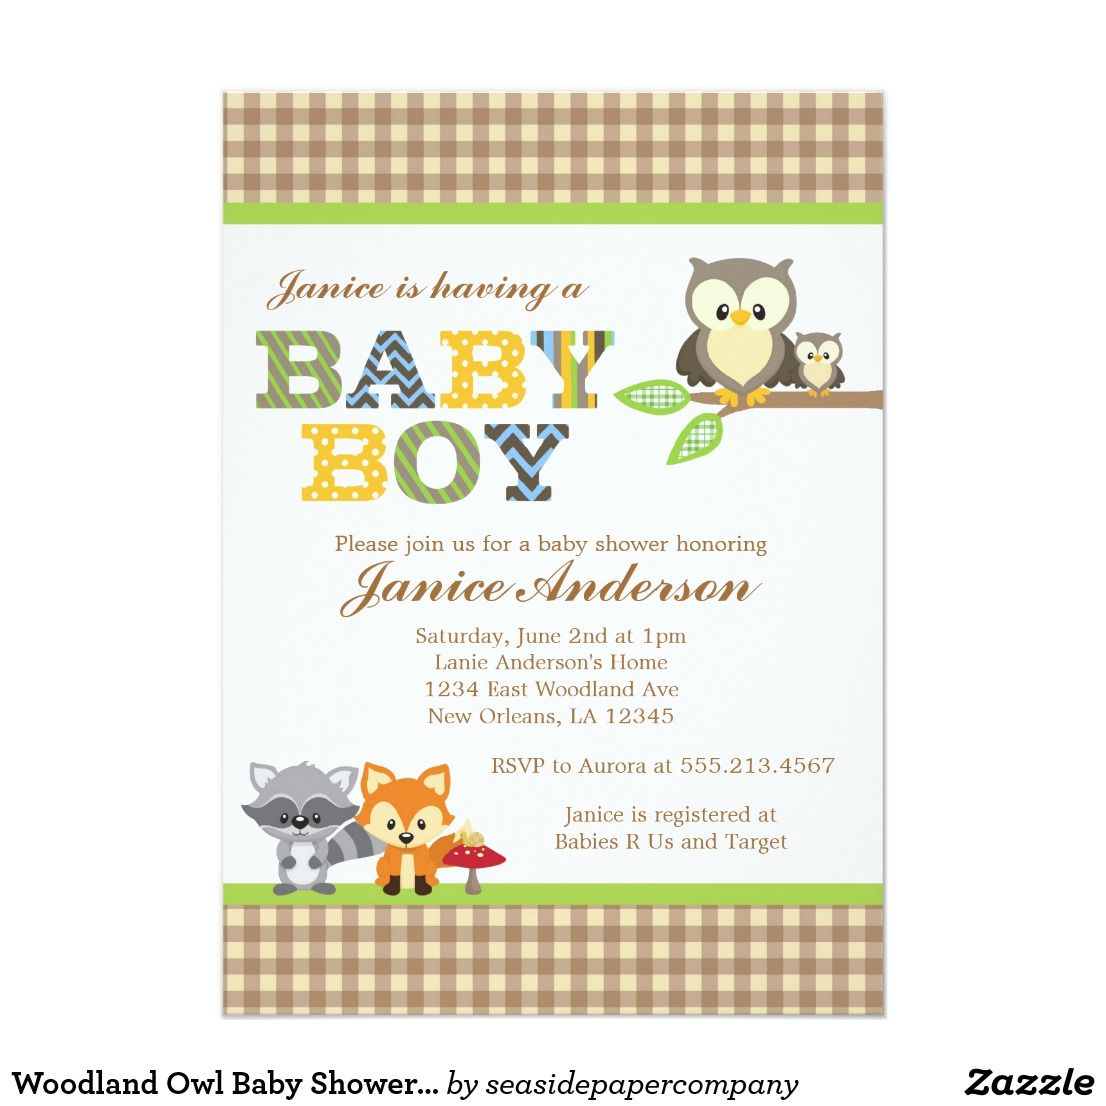 Woodland owl baby shower invitation boy shower invitations woodland owl baby shower invitation boy filmwisefo